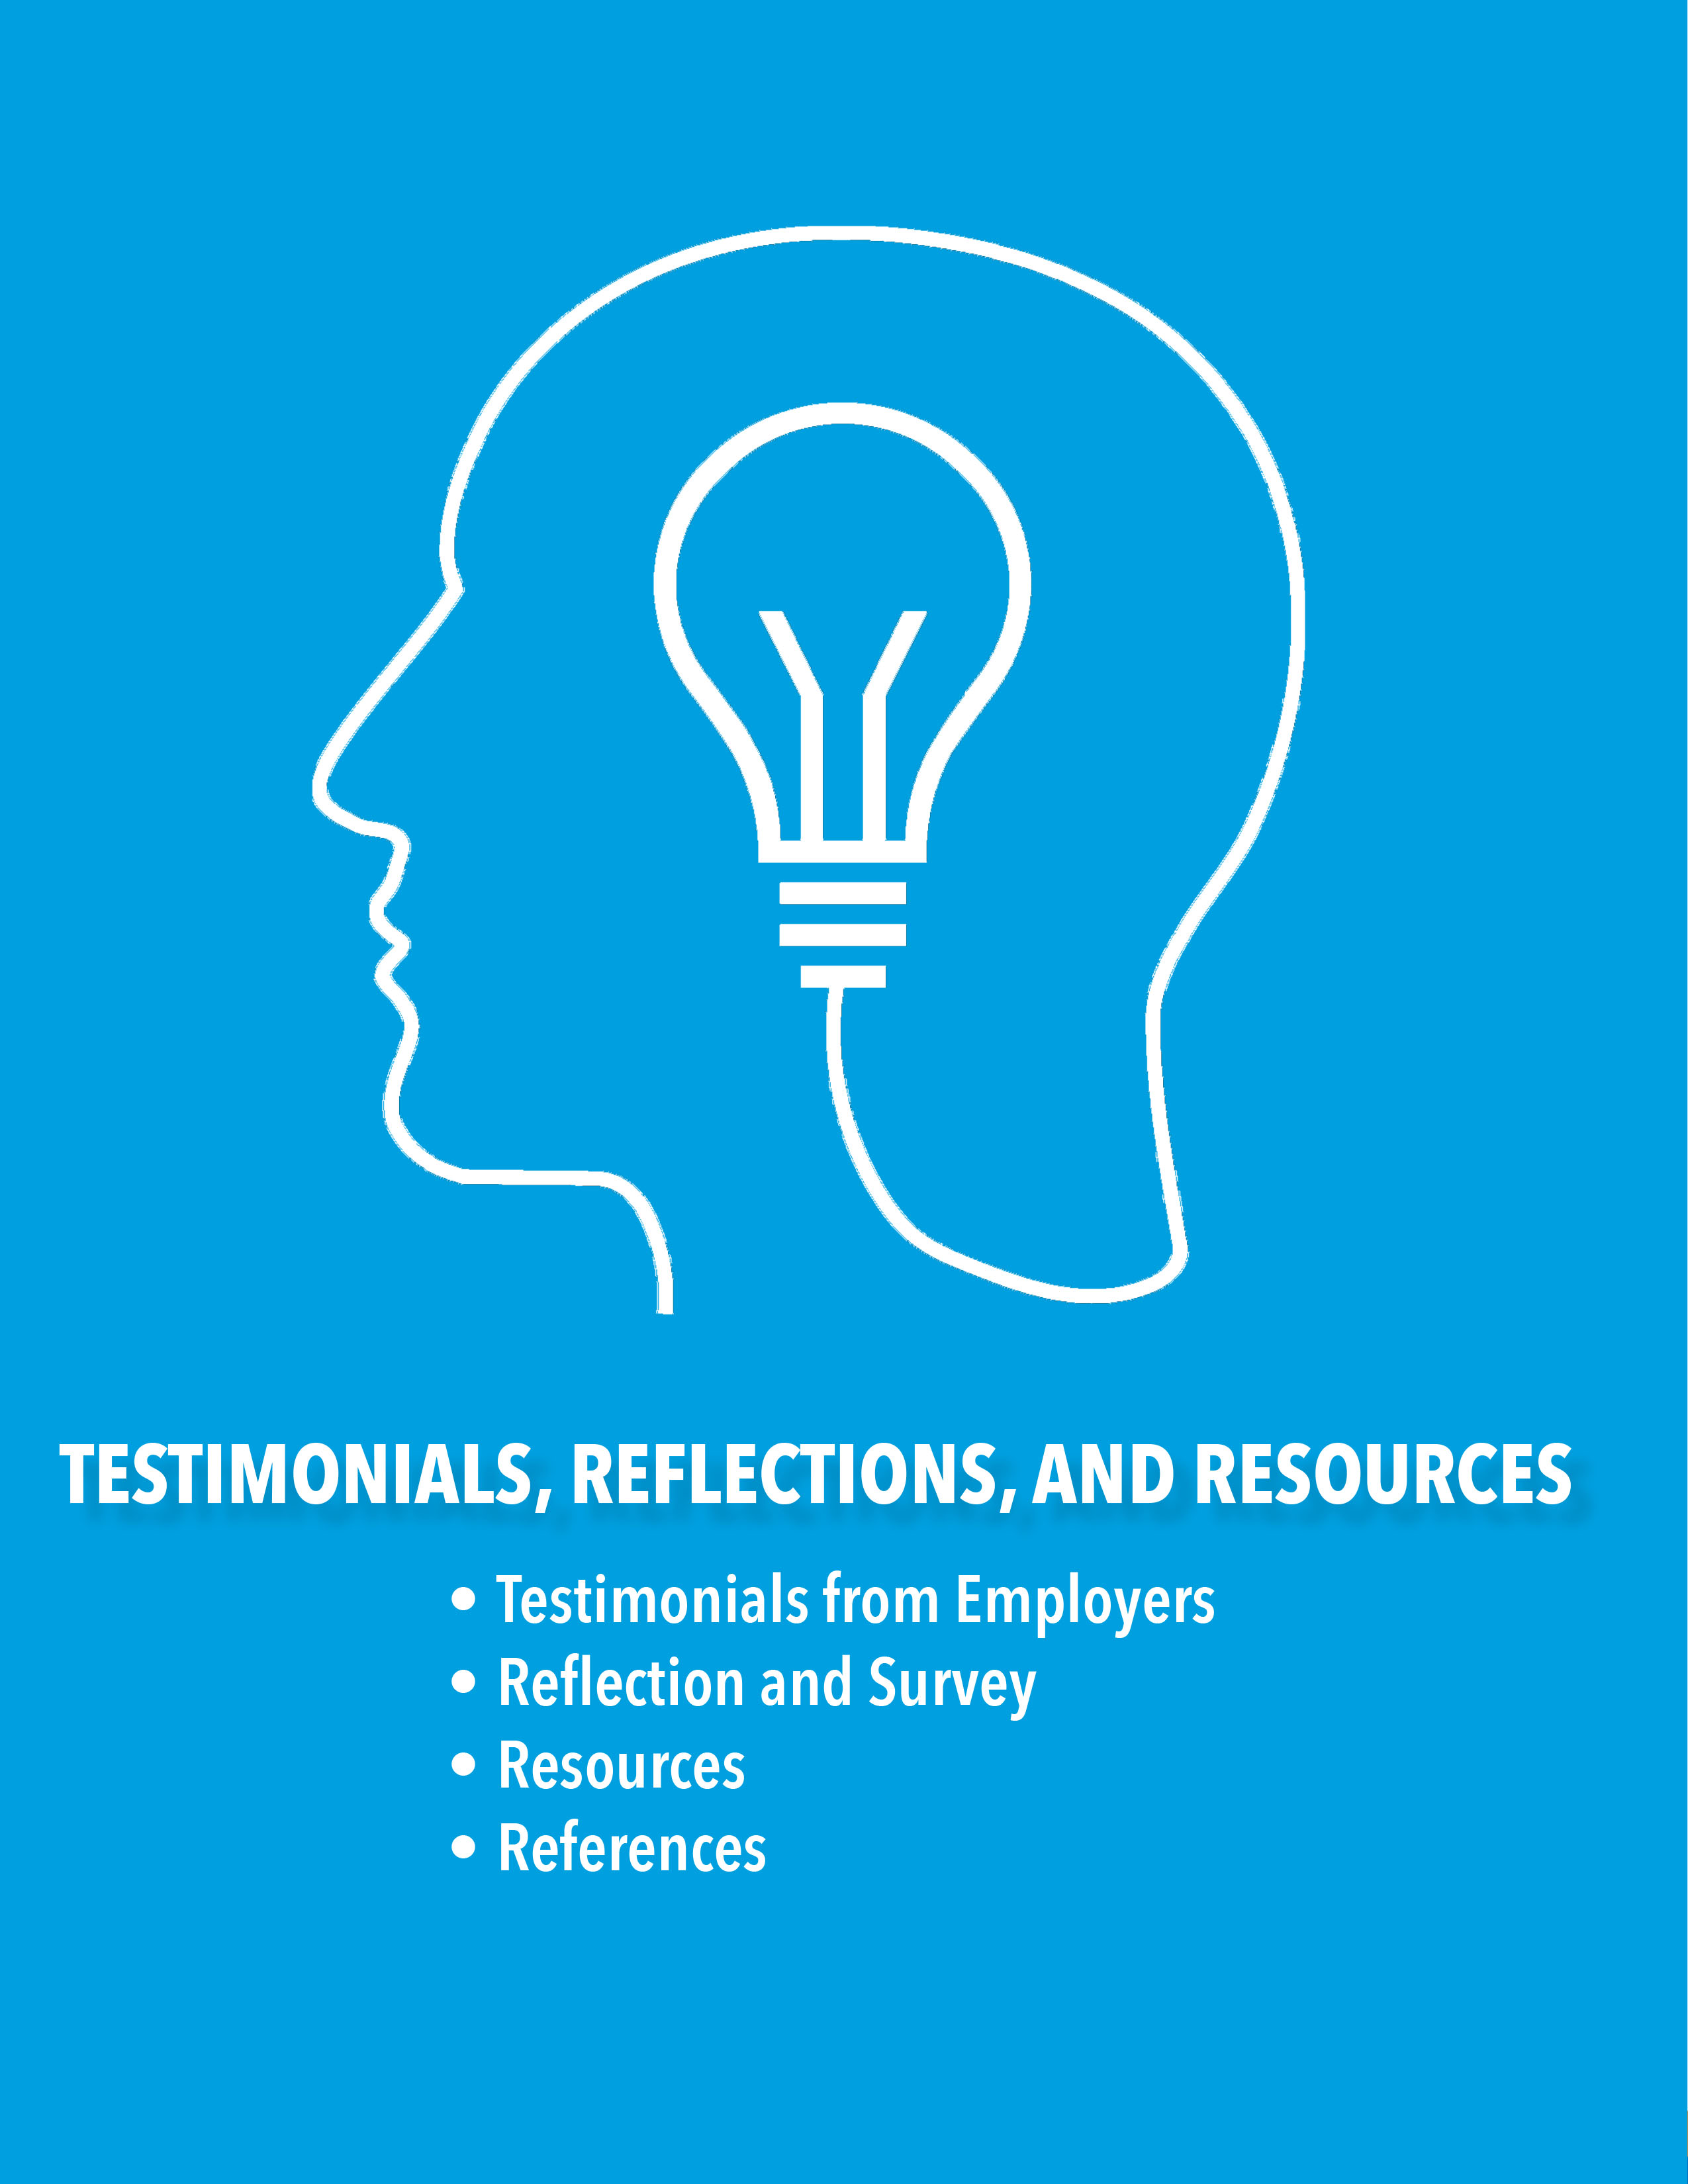 Testimonials, Reflection, and Resources: Testimonials from Employers, Reflection and Survey, Resources, References